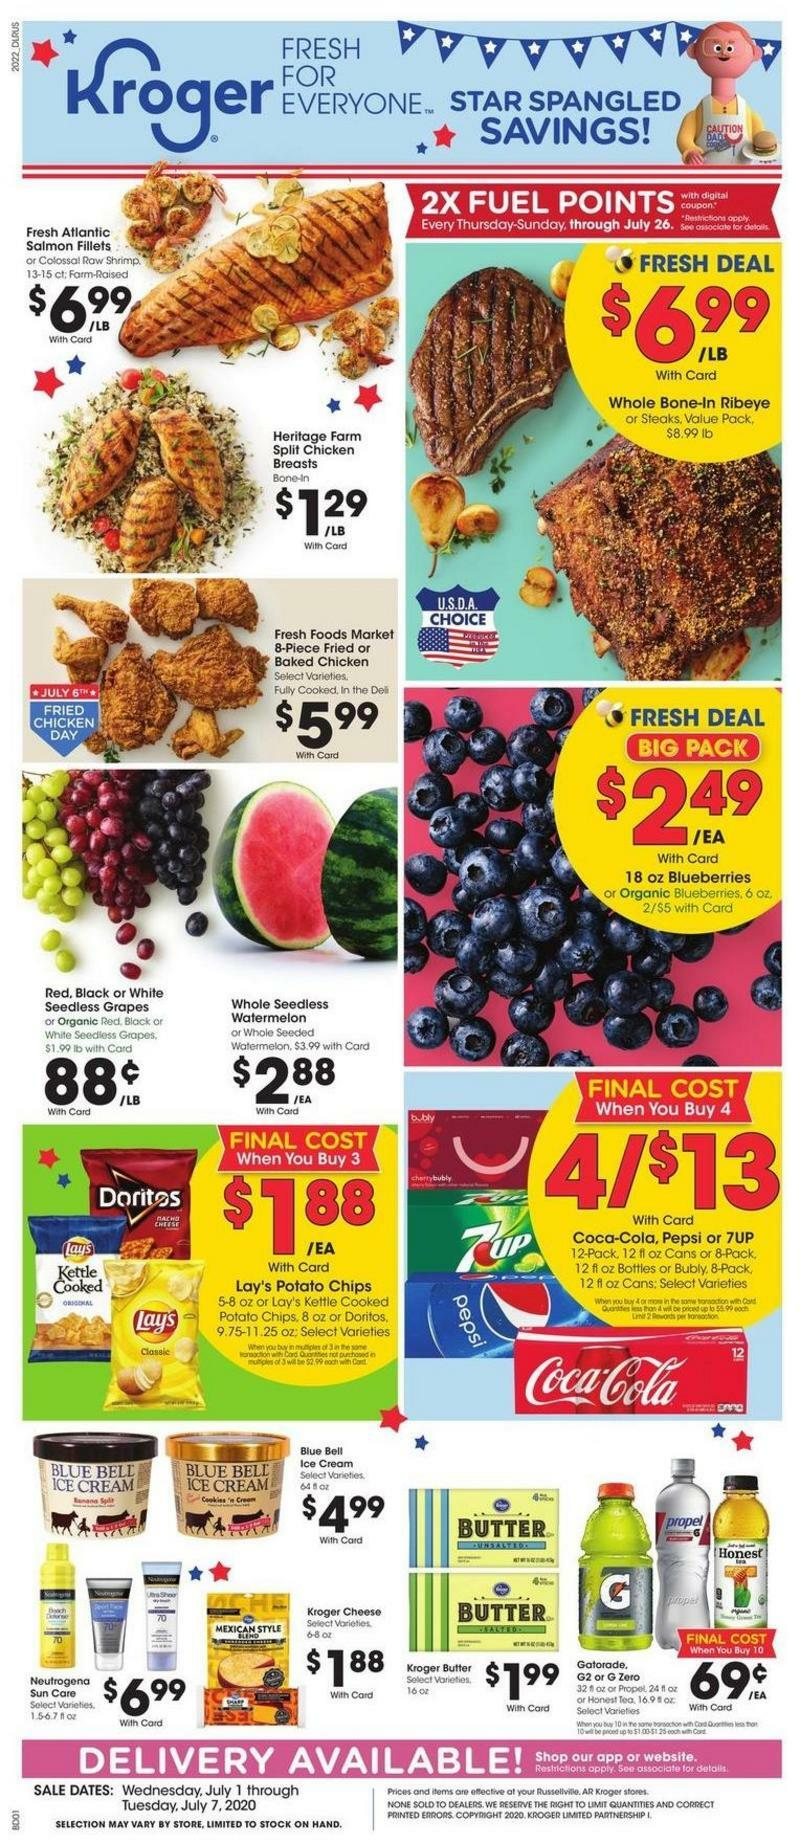 Kroger Weekly Ad from July 1